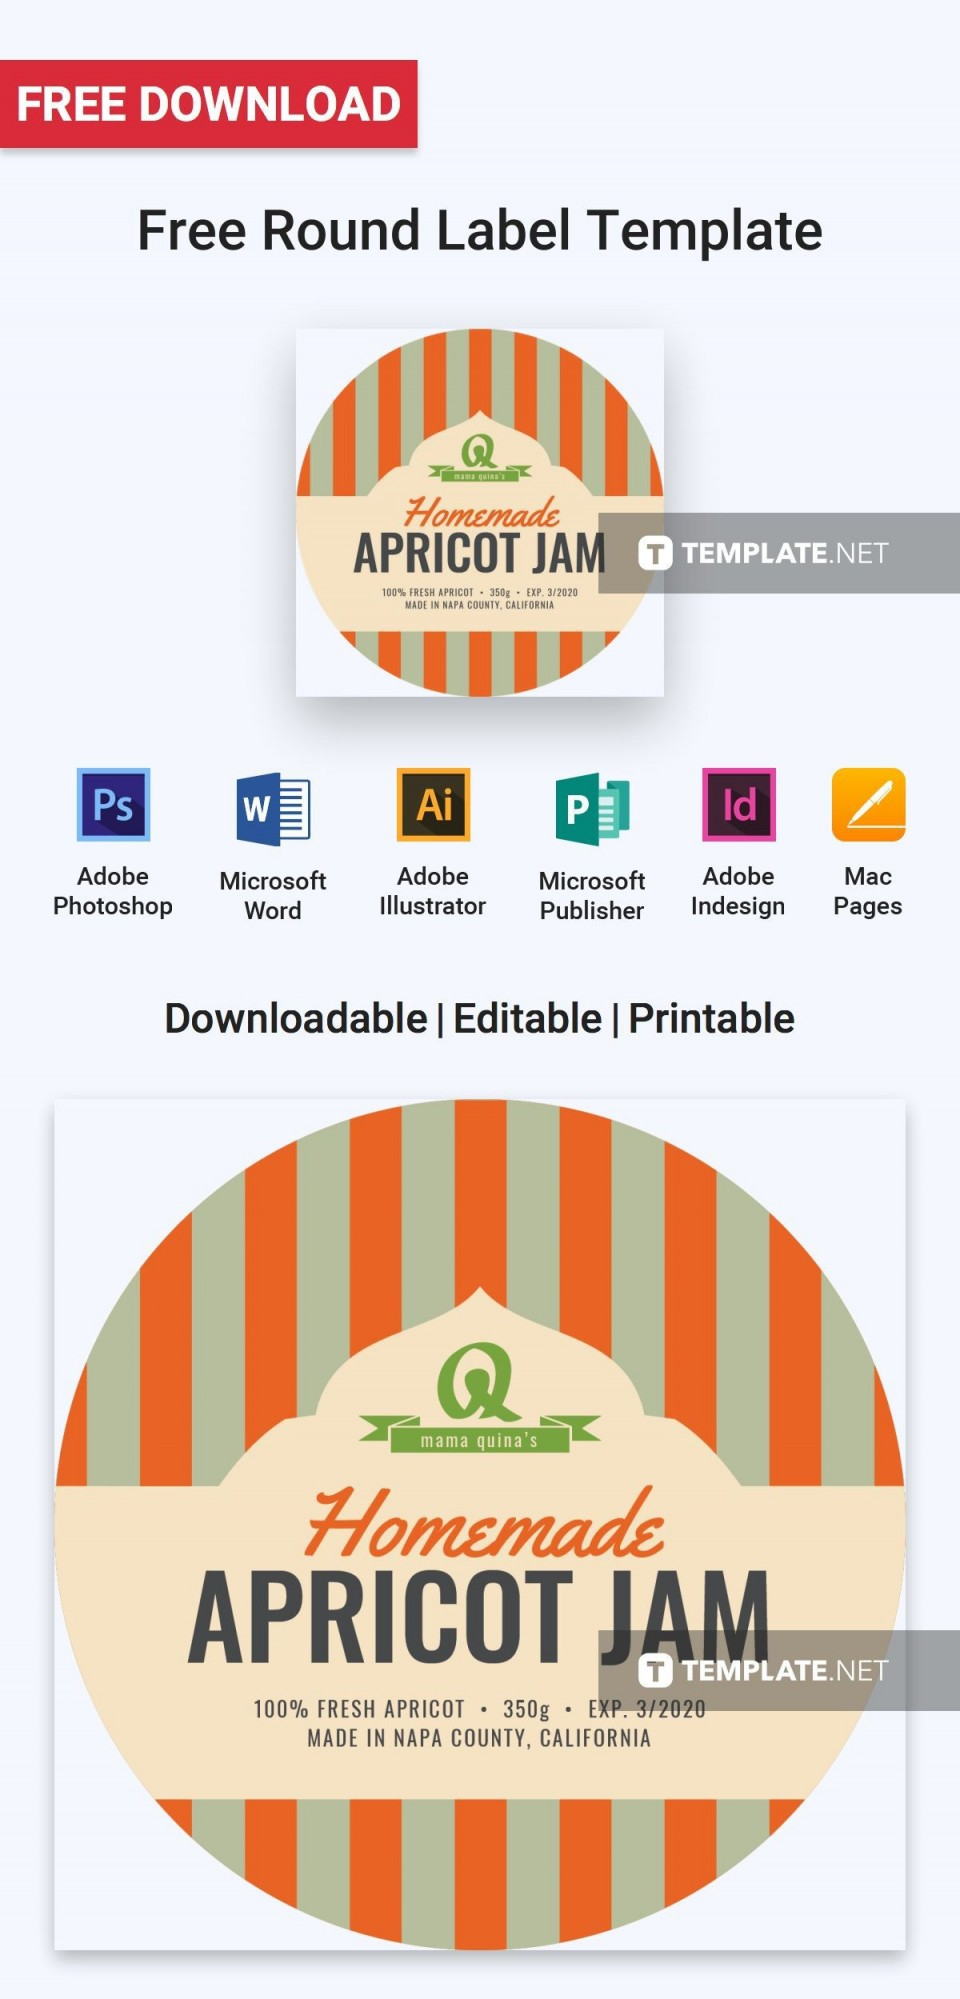 003 Surprising Microsoft Word Label Template Free Download High Definition 960